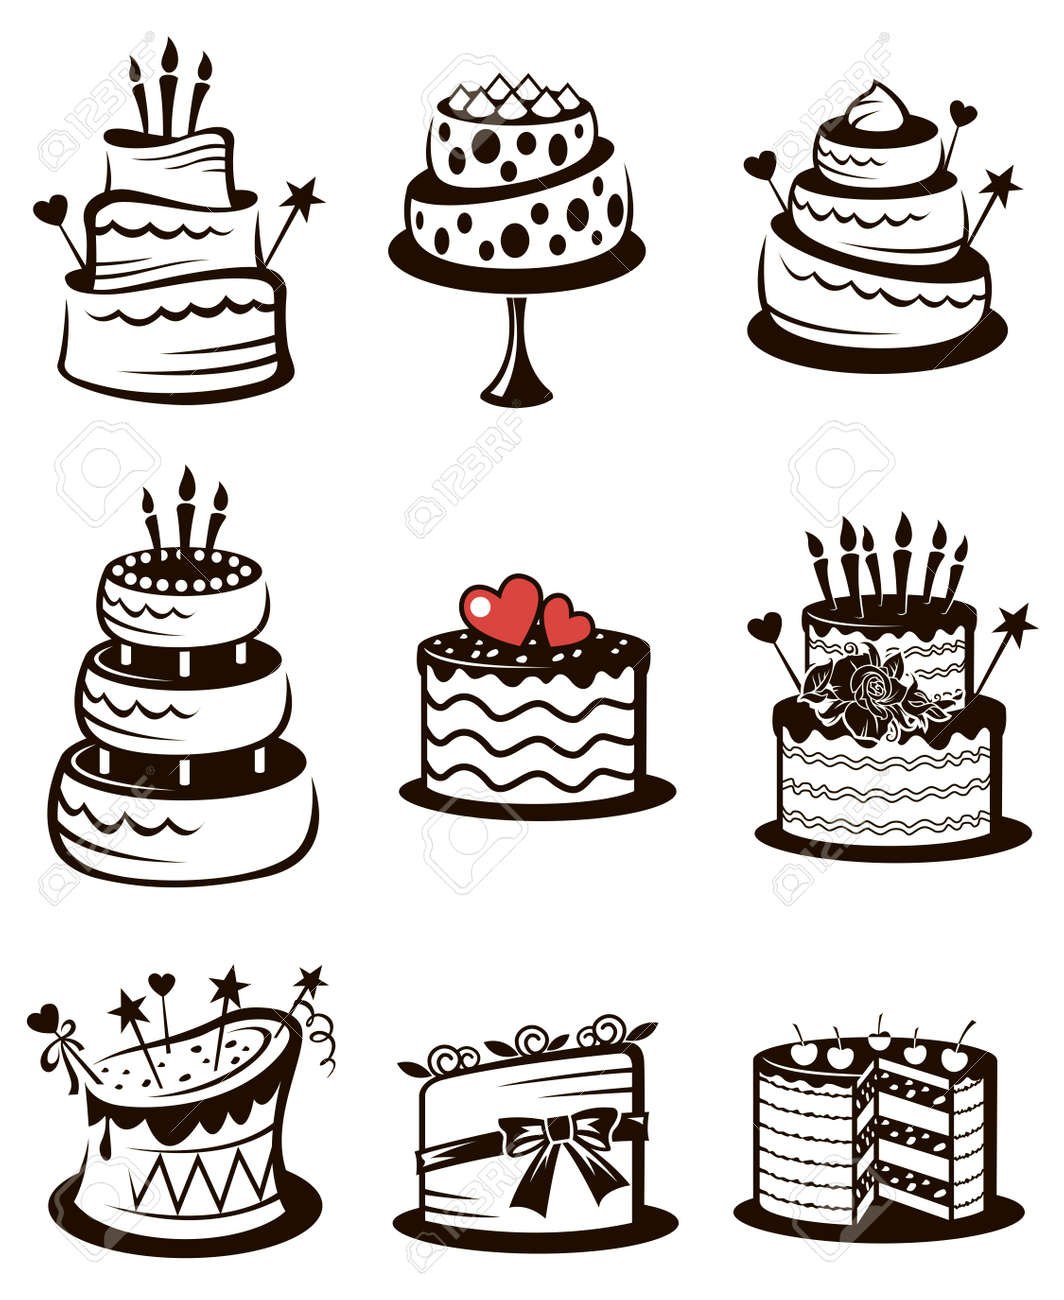 monochrome collection of various cakes isolated on white background - 159176745